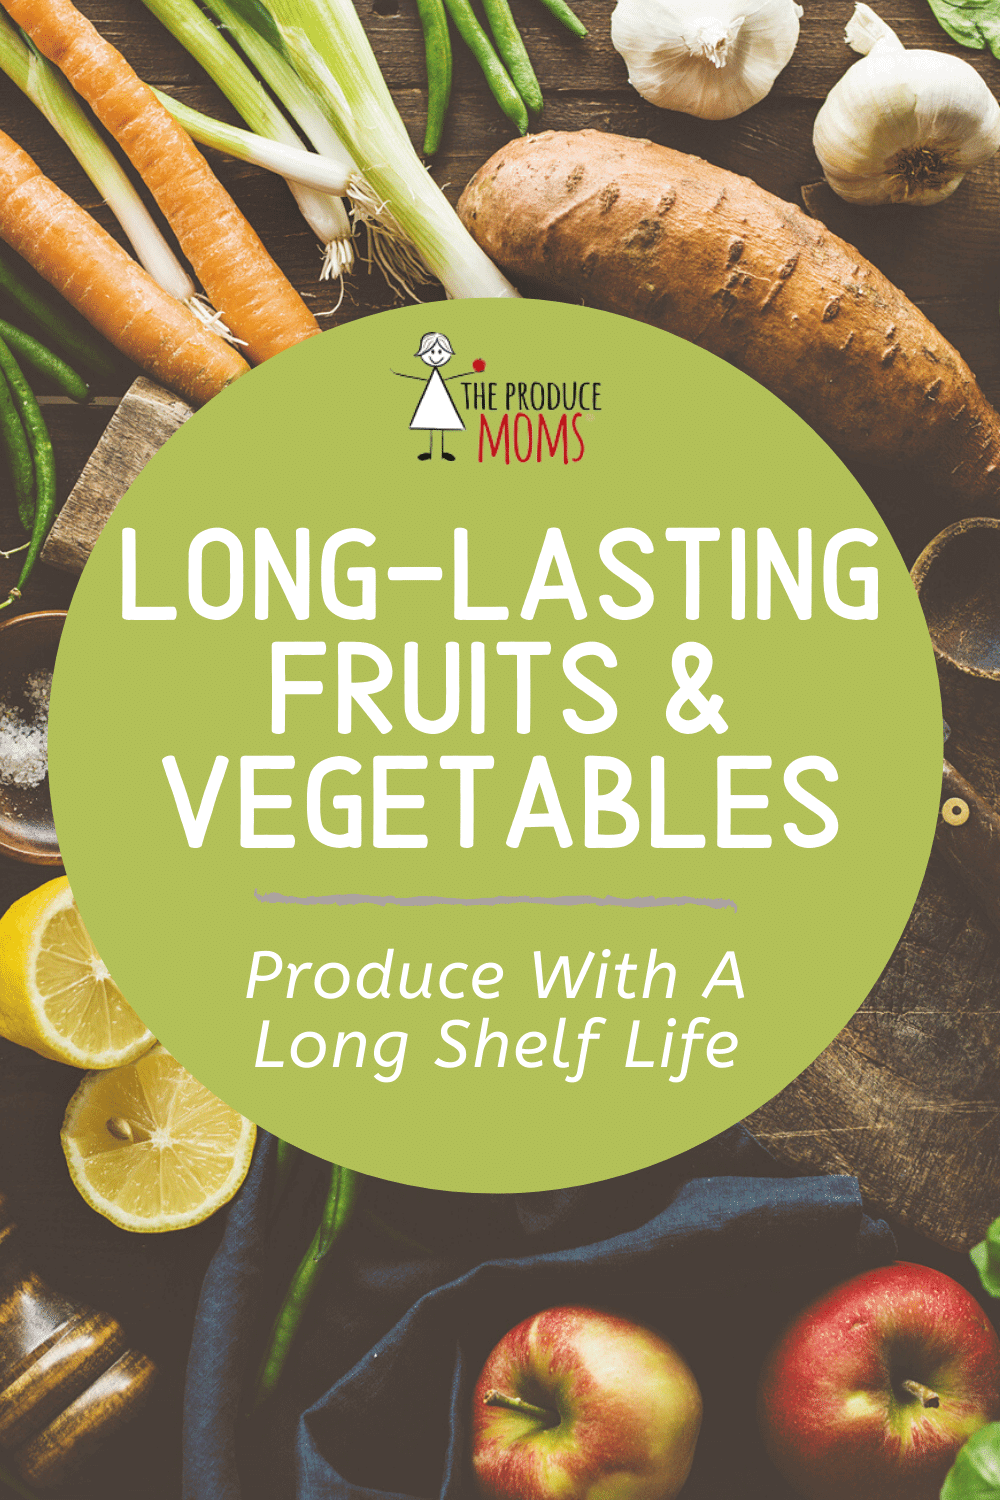 Produce With A Long Shelf Life